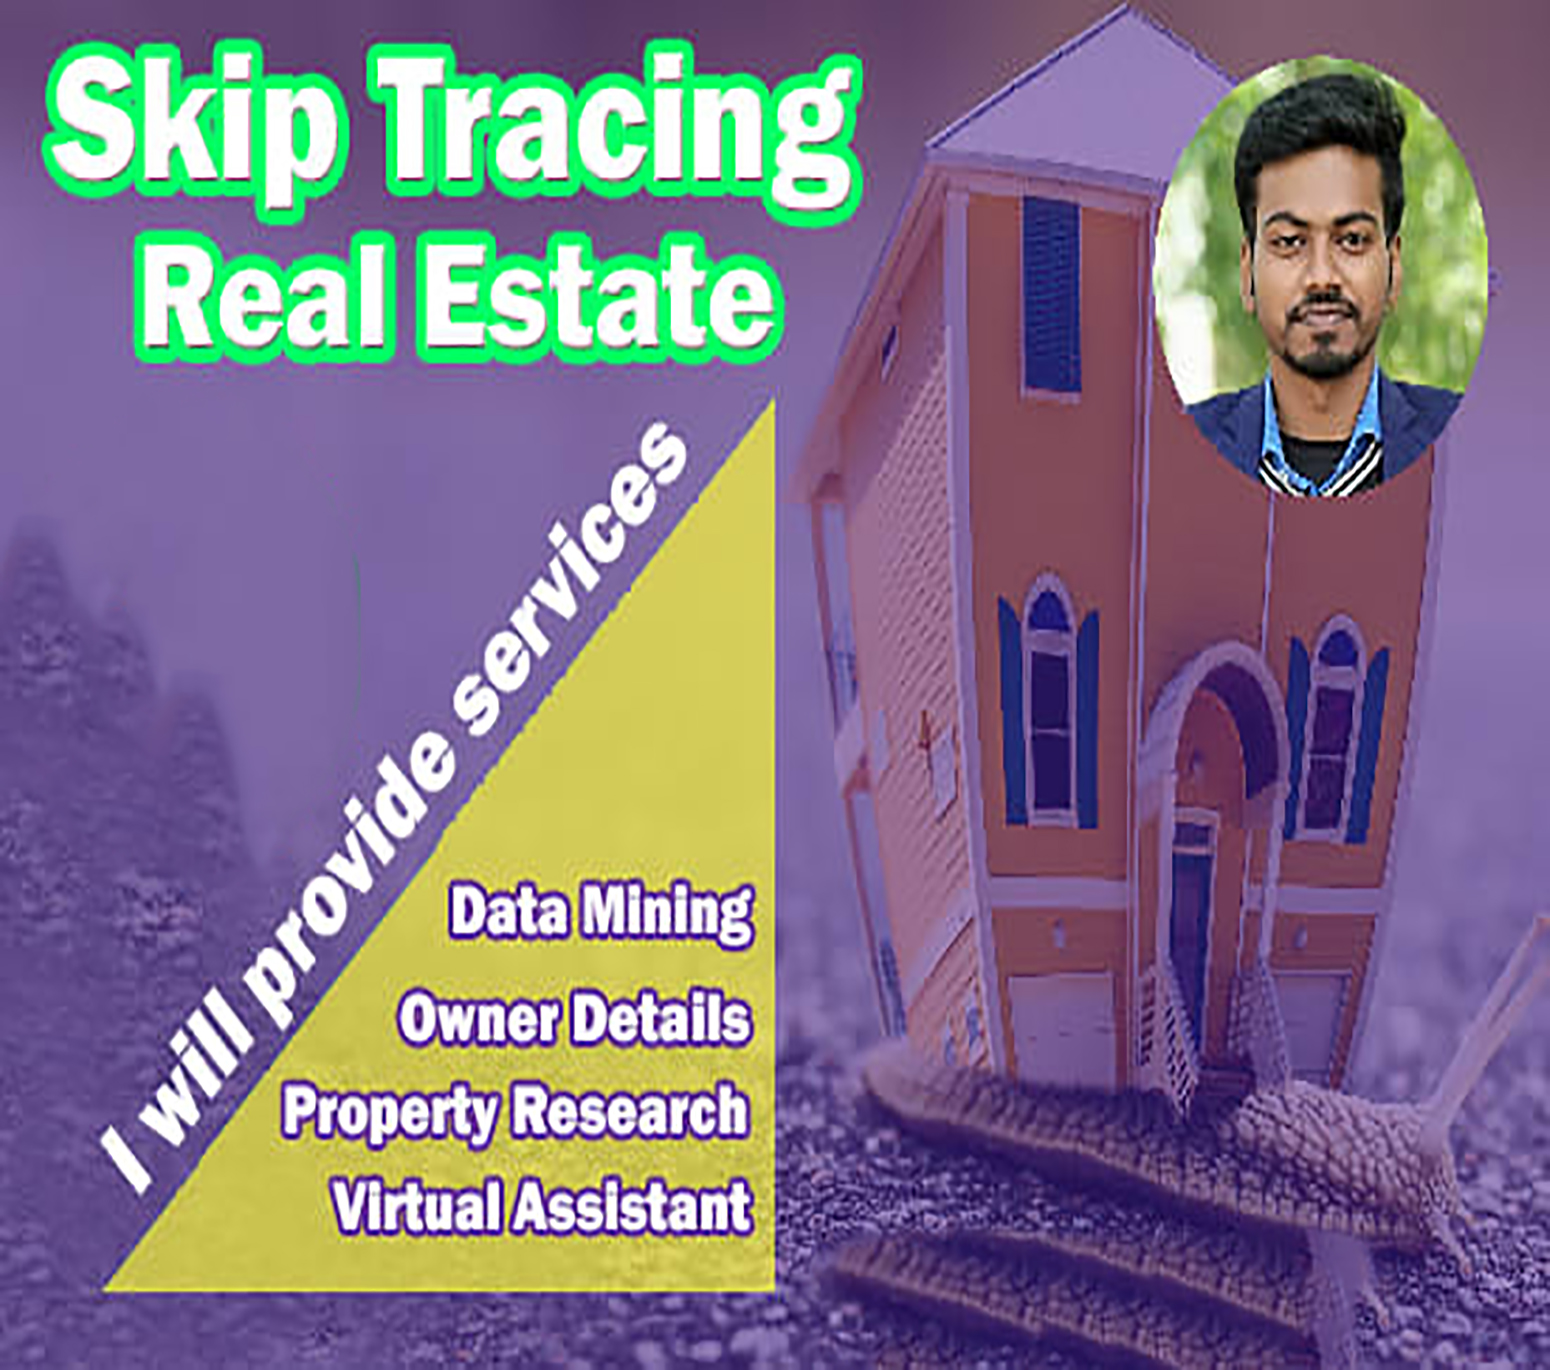 I can provide 3 Skip Tracing Links for Real Estate Investors